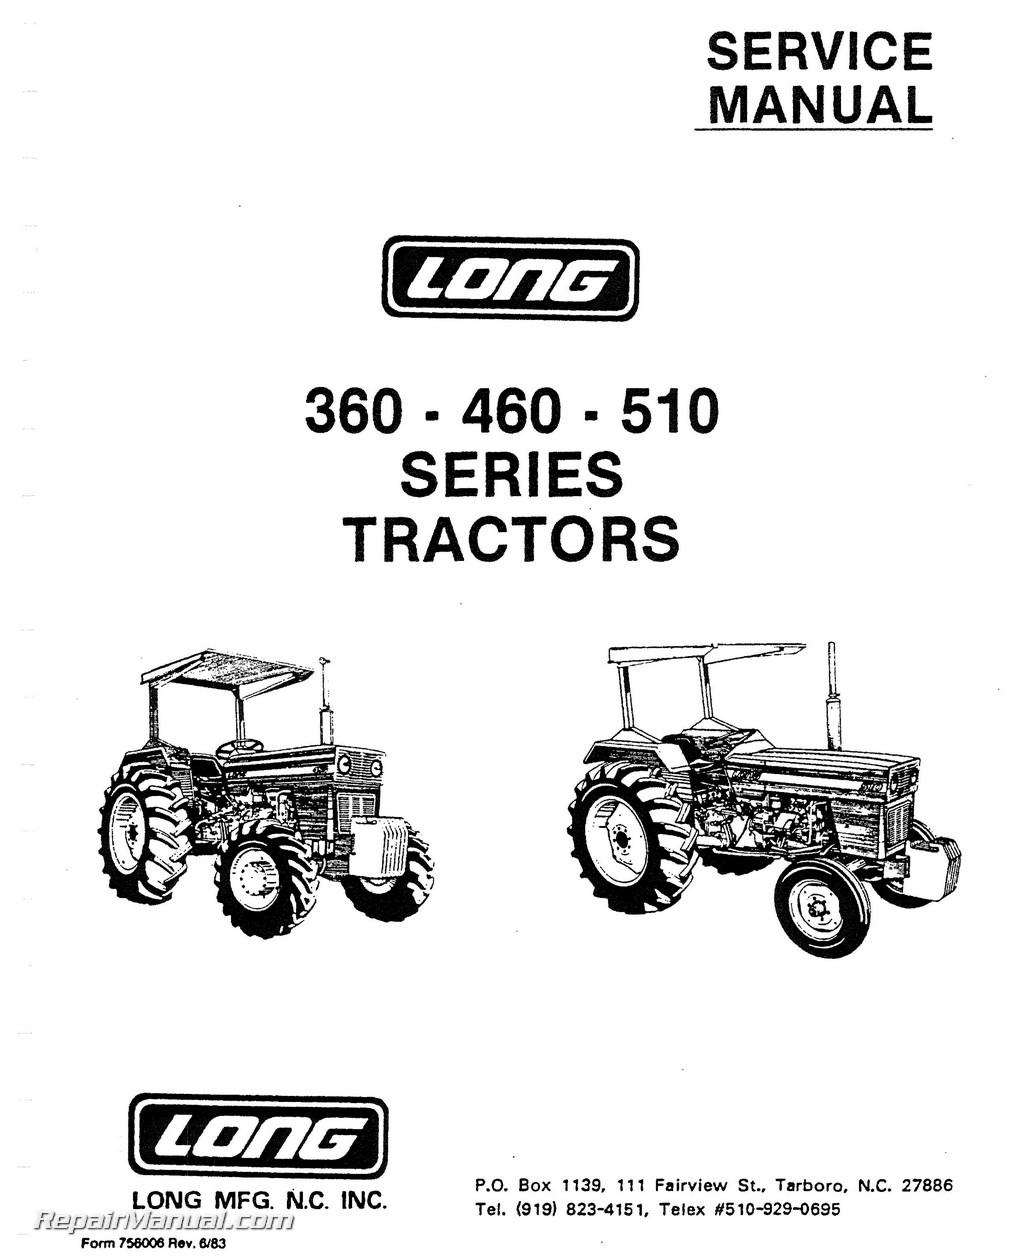 Long 360 460 510 Series Tractor Service Manual_Page_1 long tractor manuals repair manuals online wiring diagram for 2610 long tractor at eliteediting.co